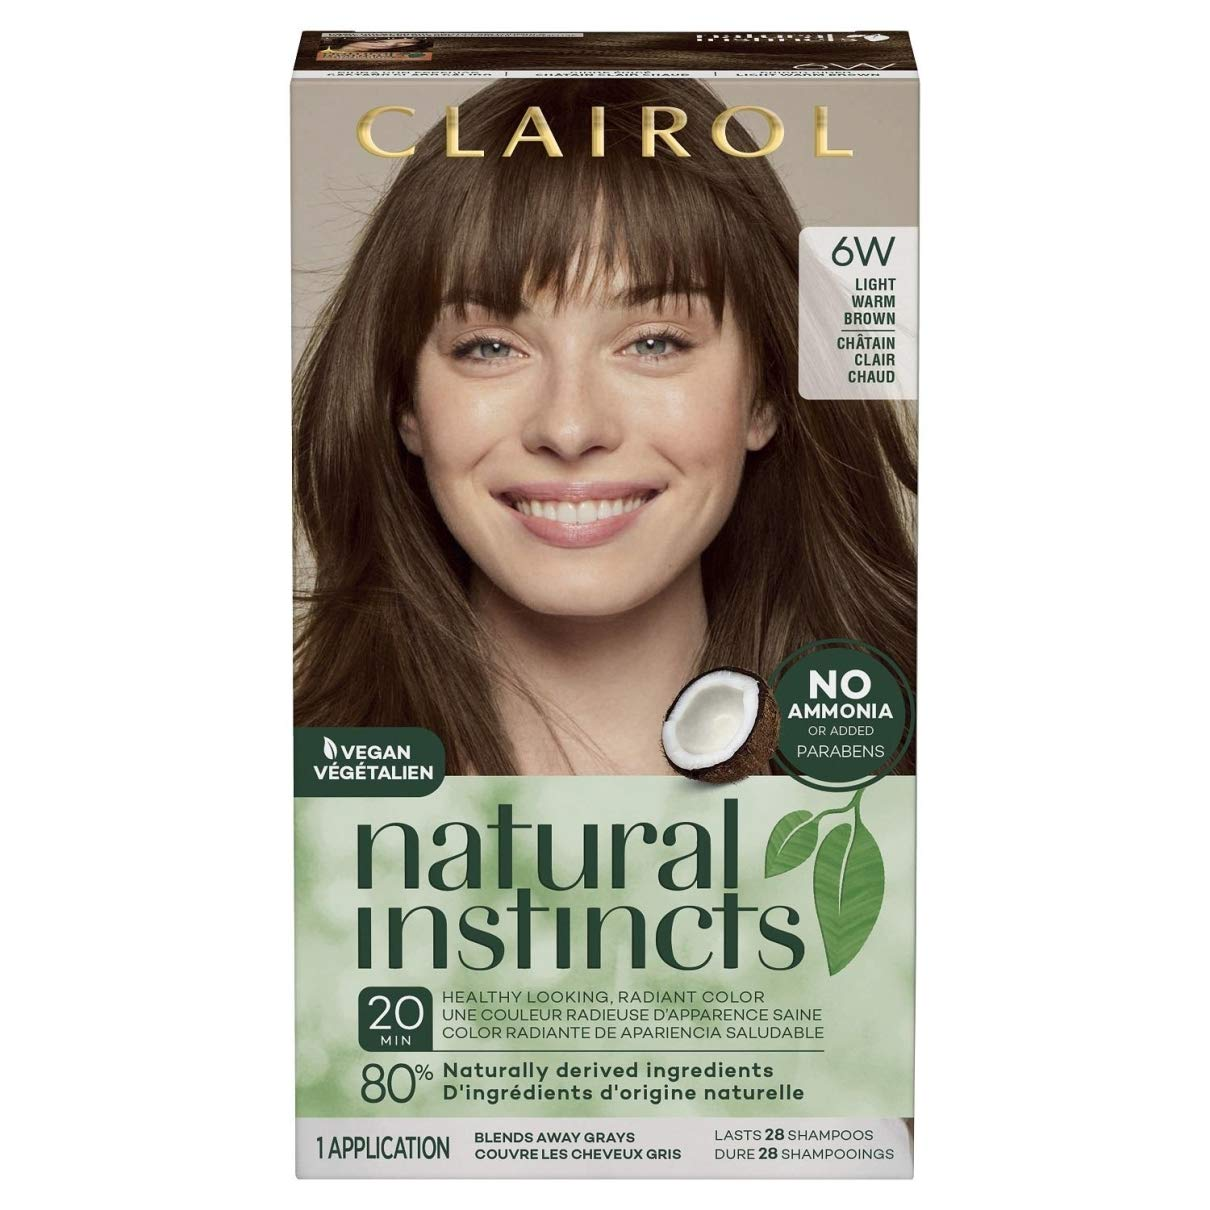 Clairol 3 Count 6w/13b Natural Instincts Hair Color $21.39 Coupon